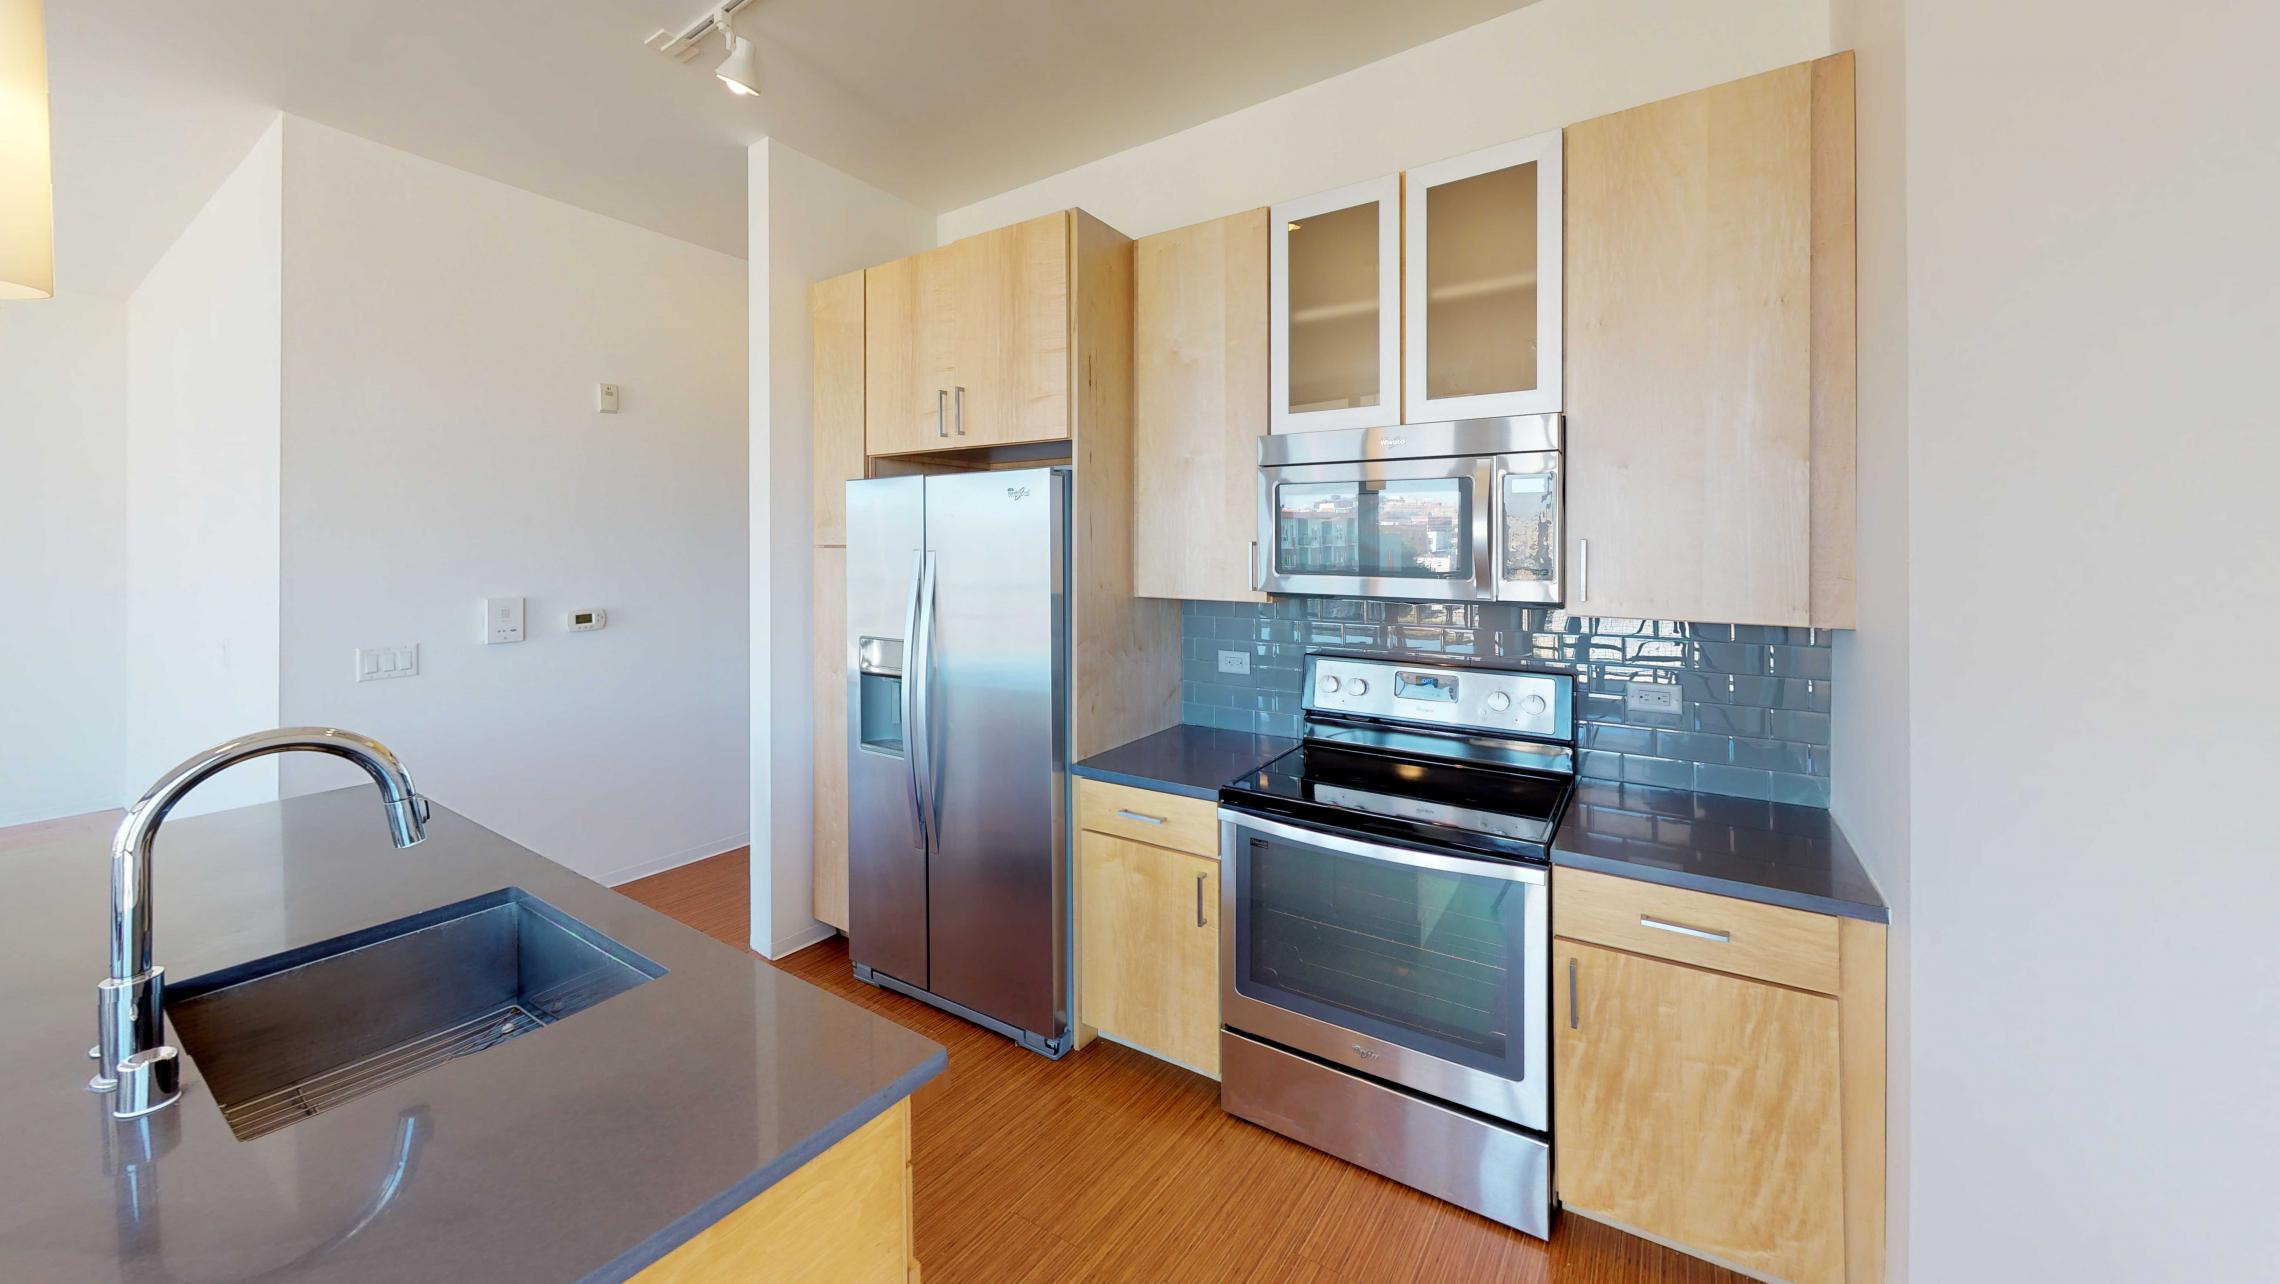 SEVEN27-Apartment-524-Kitchen-wo bedroom-Modern-Luxuy-Upscale-Capitol View-Lake View-Tp Floor-Balcony-Terrace-City View.jpg